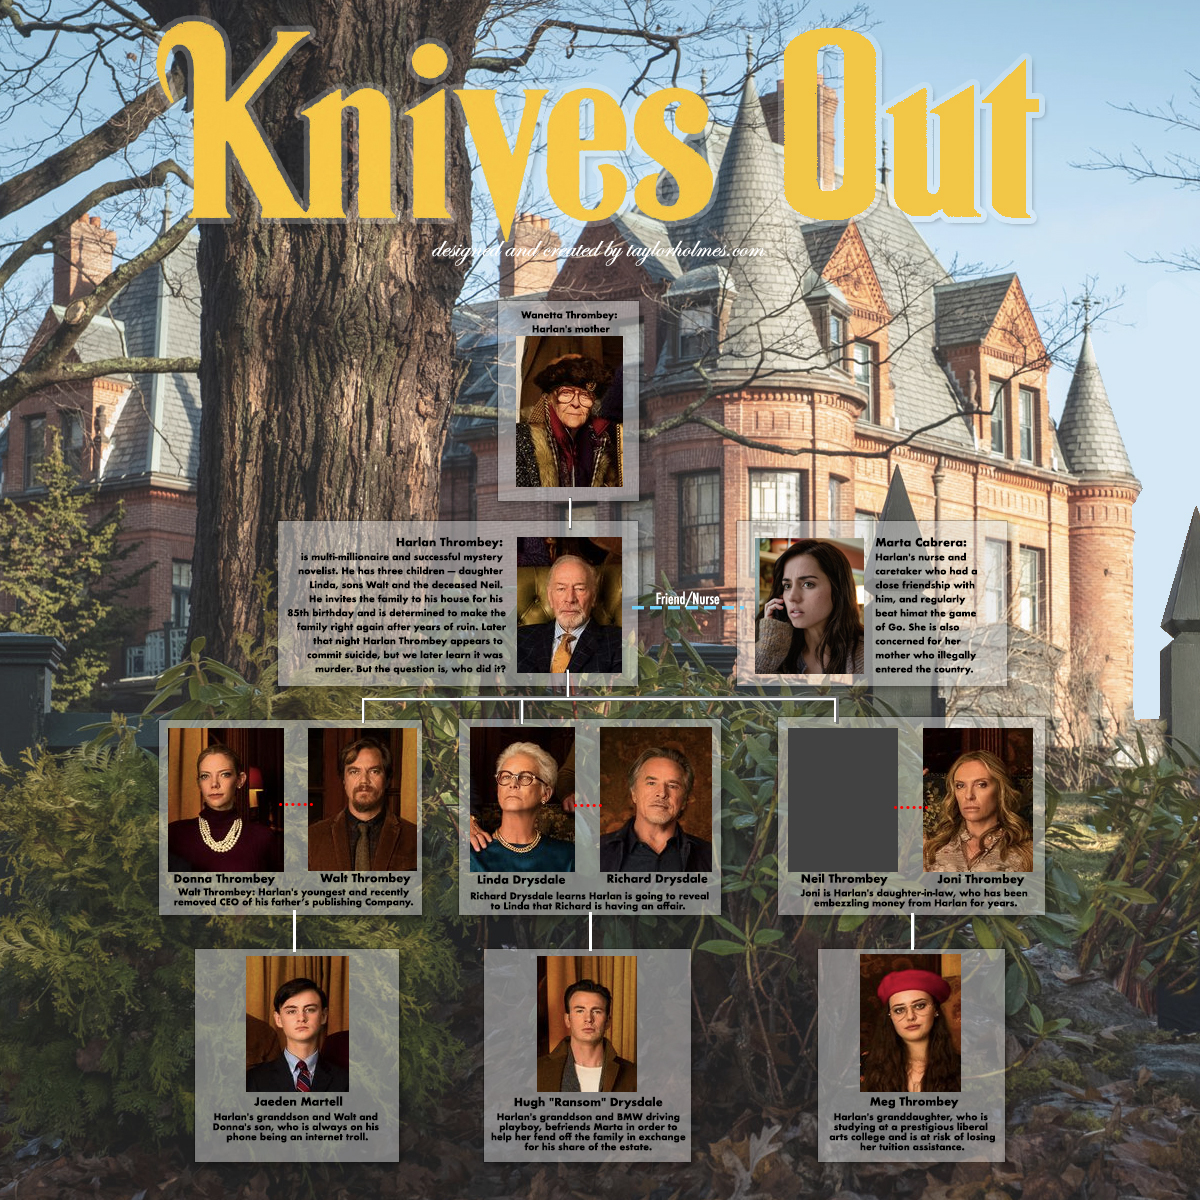 Knives Out Family Tree Infographic Explained and discussed